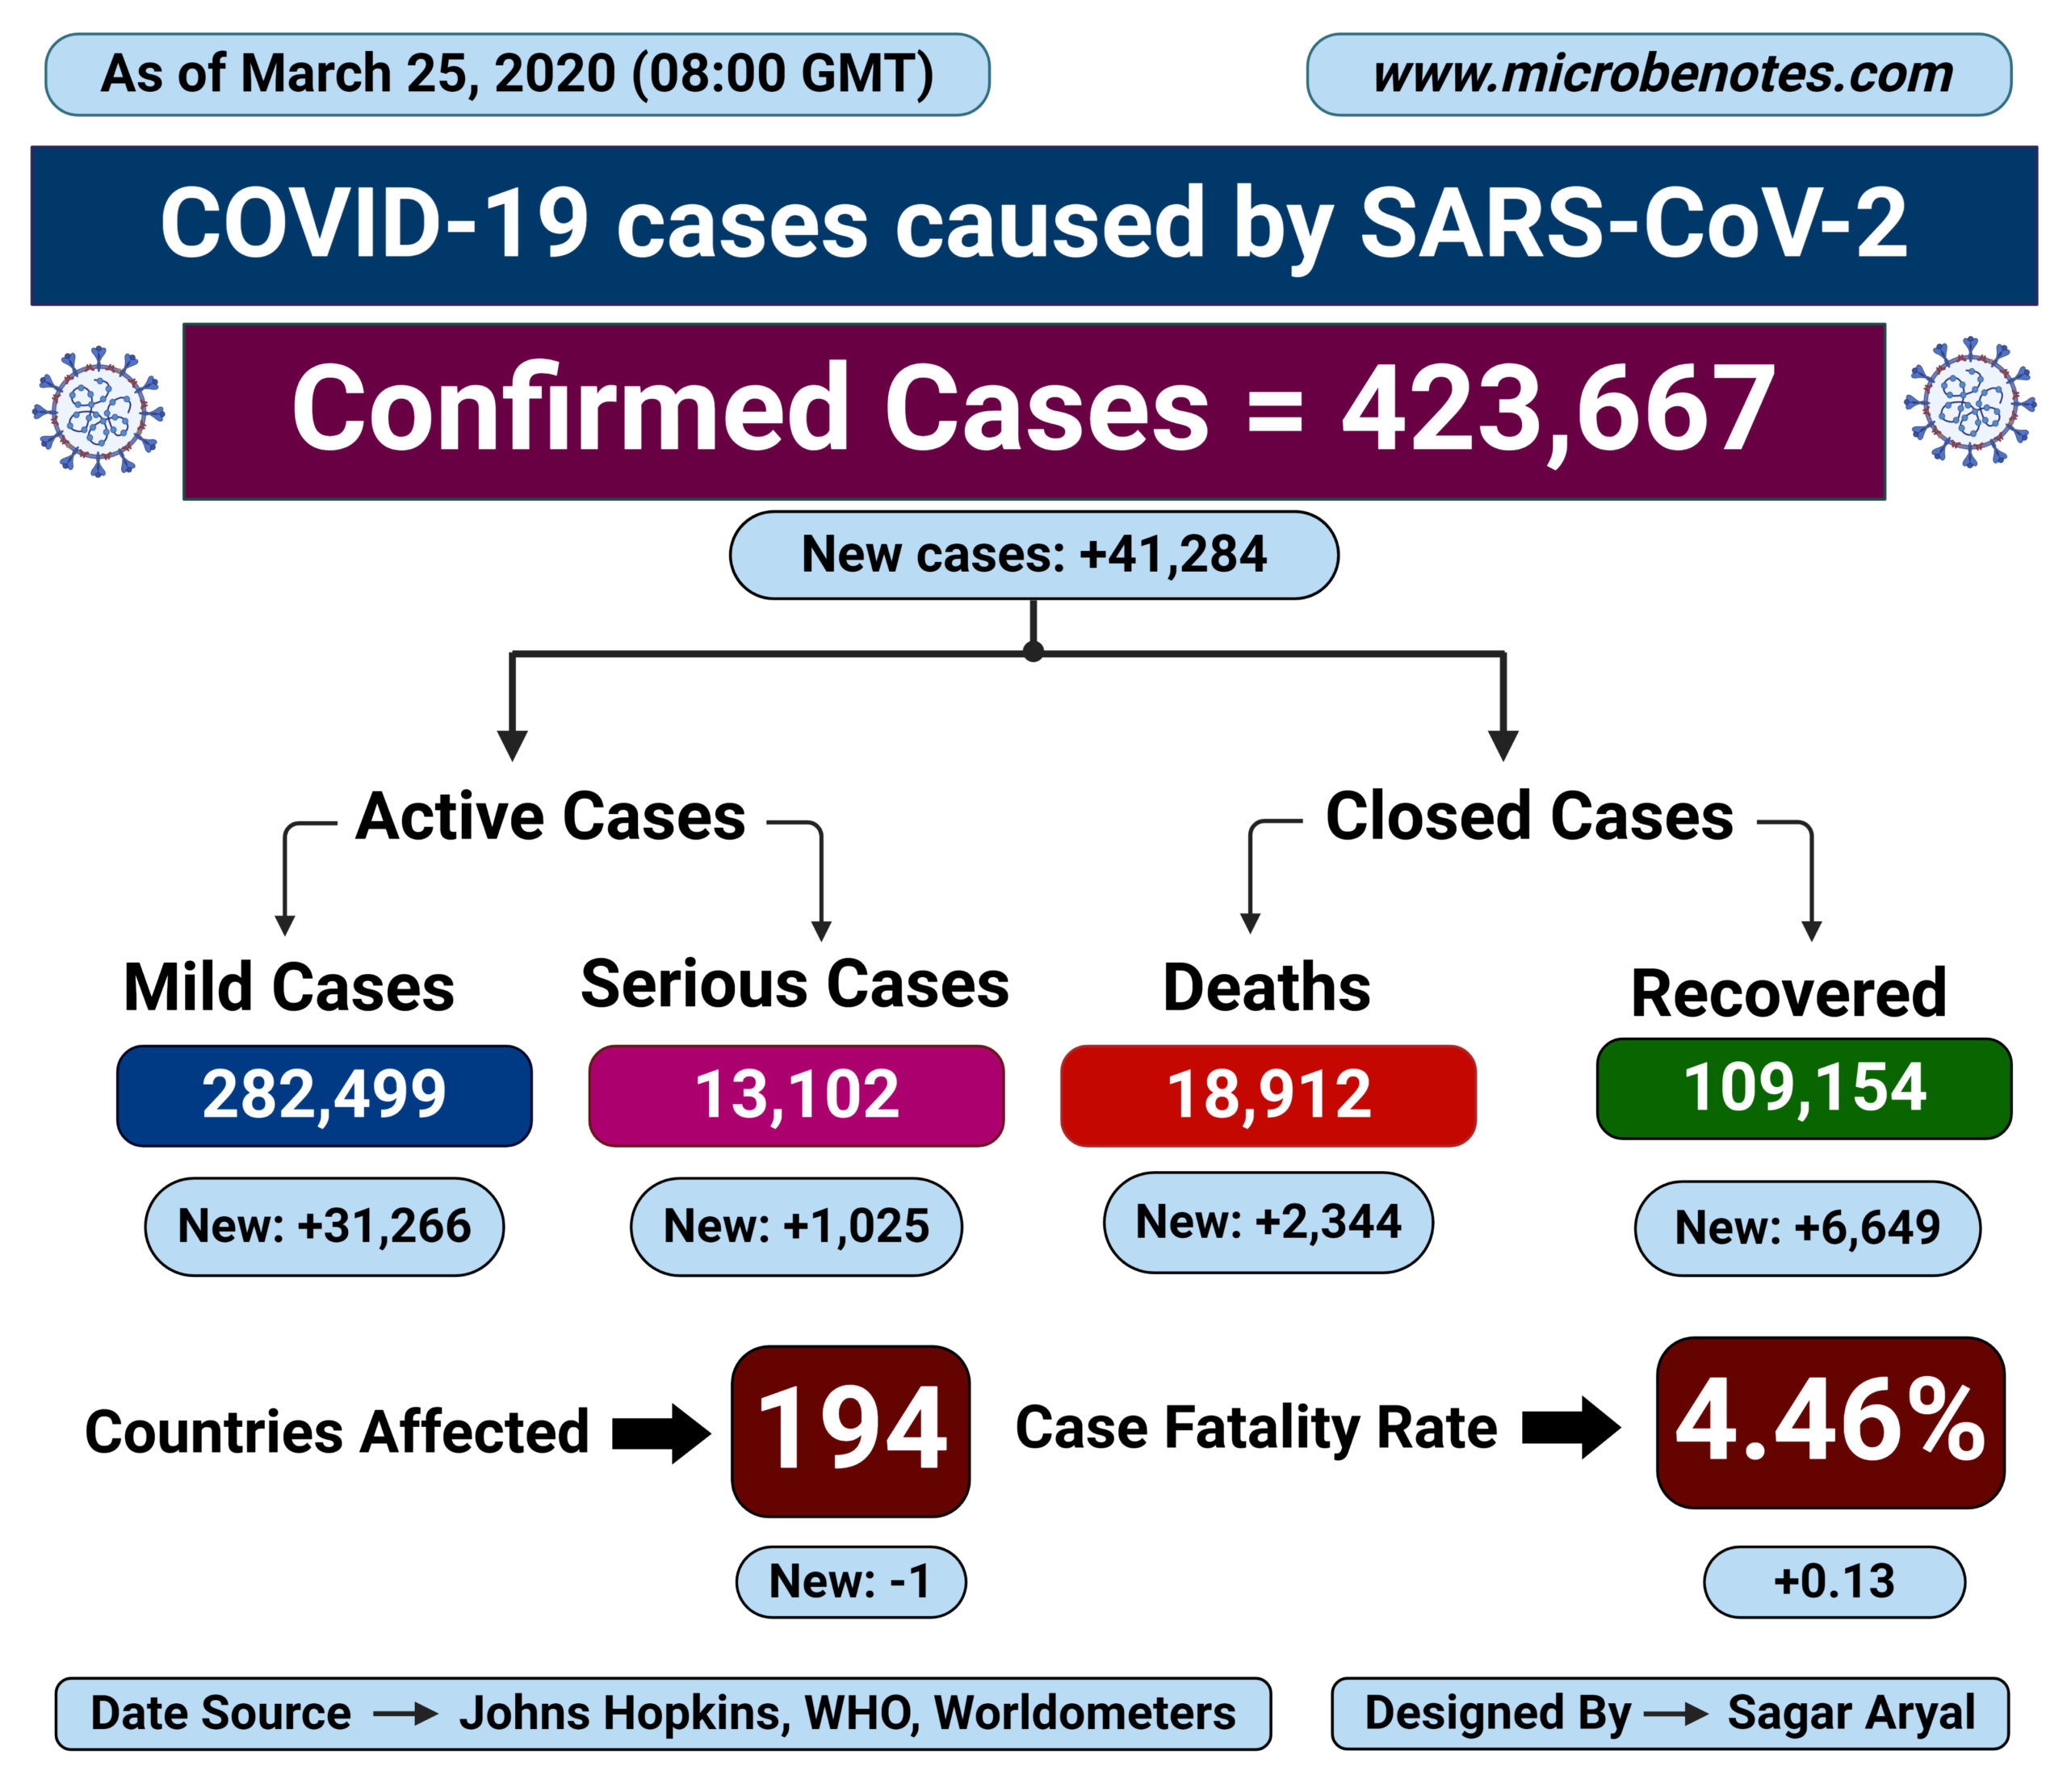 Epidemiology of COVID-19 caused by SARS-CoV-2 as of March 25, 2020